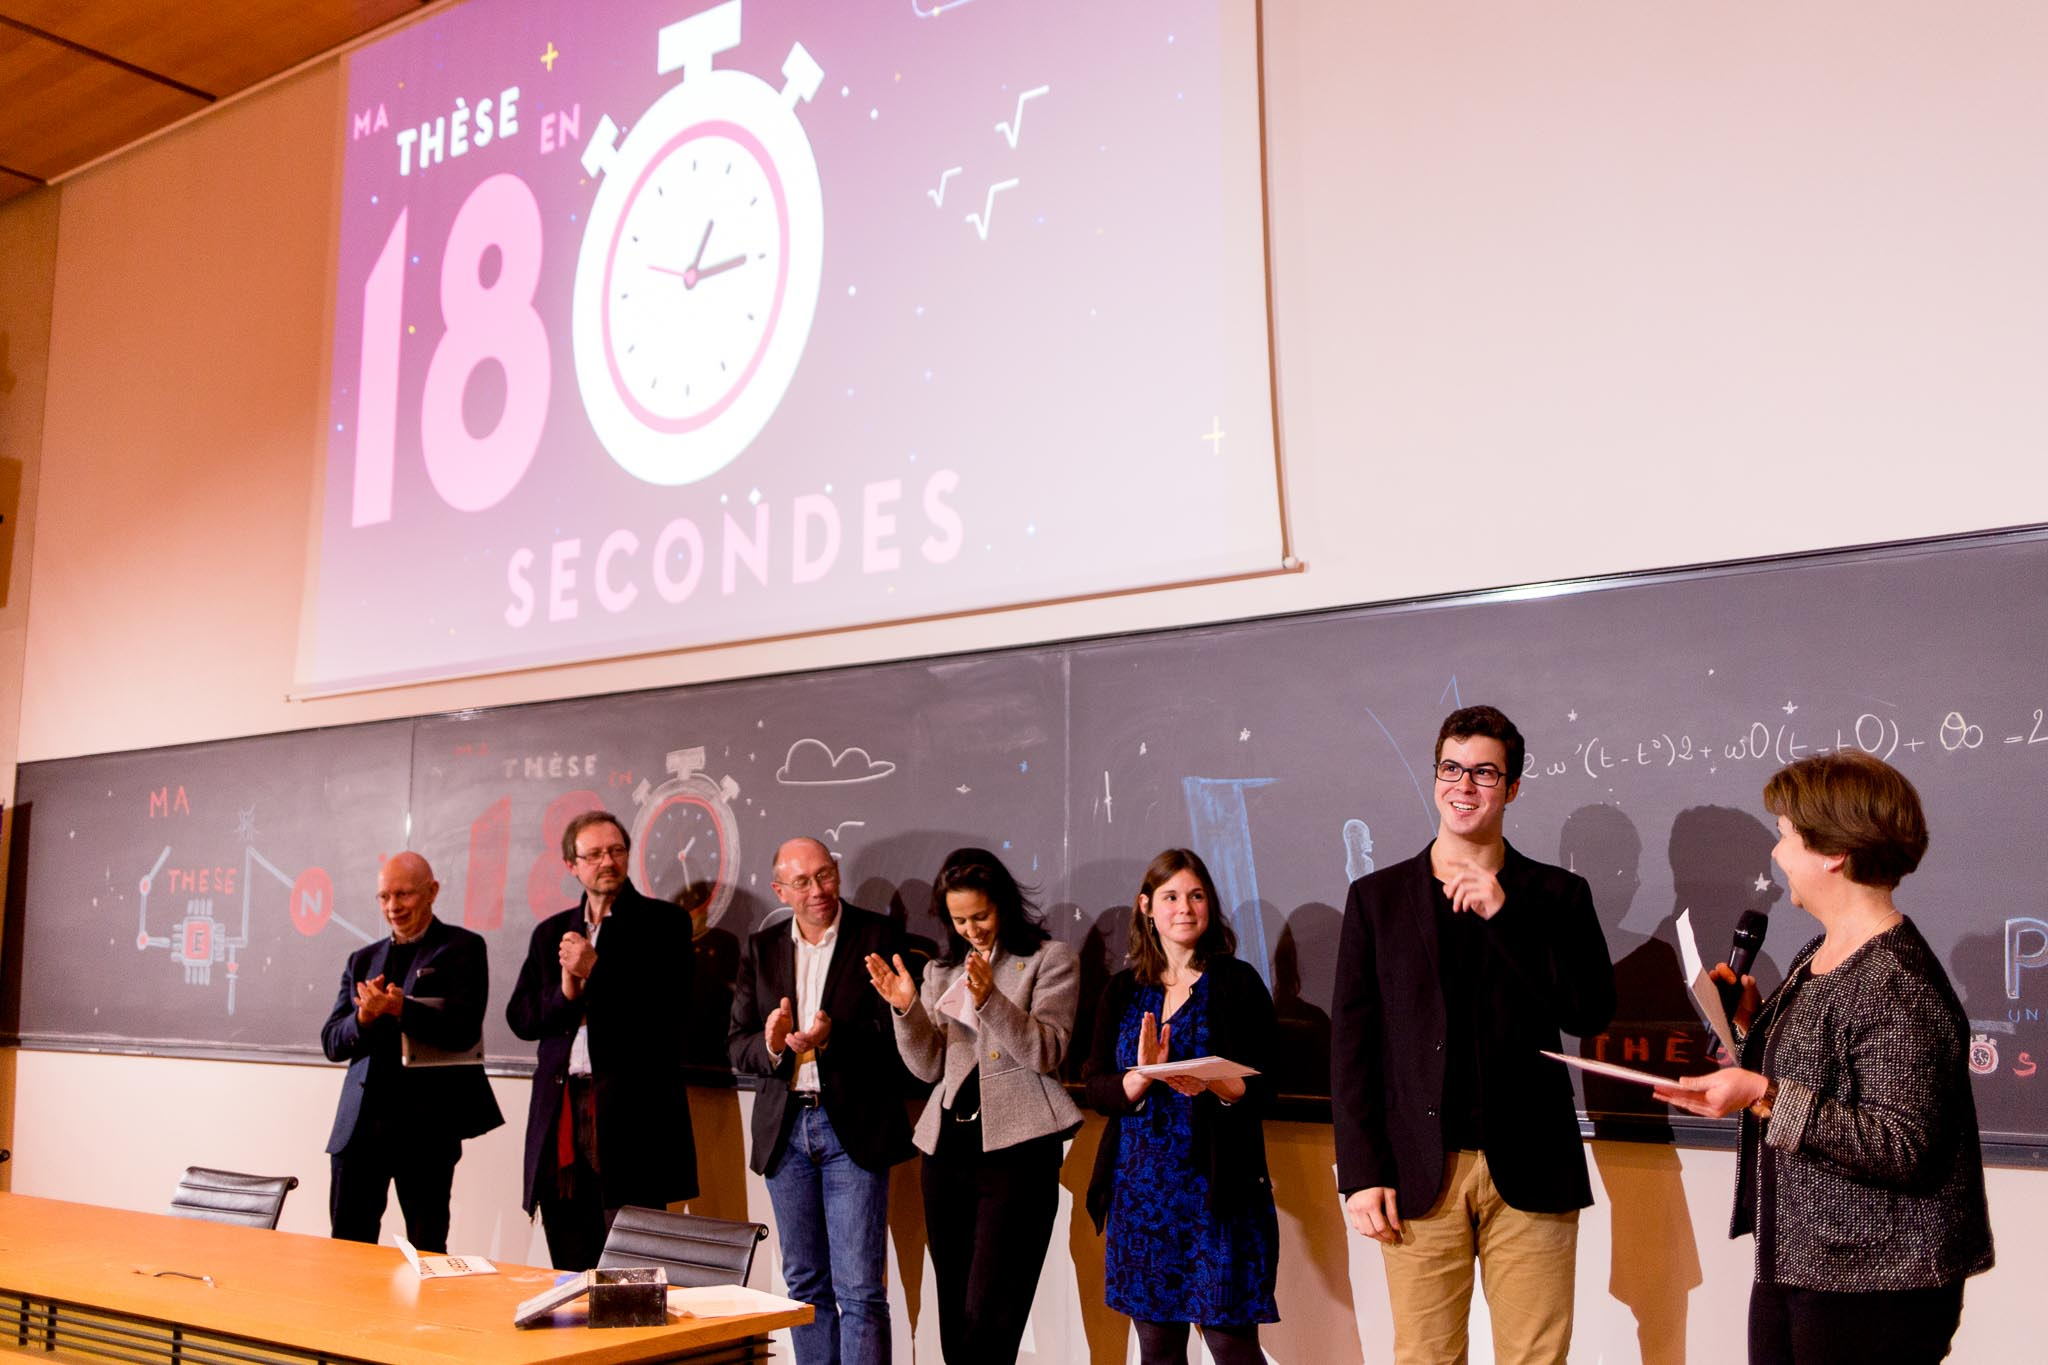 My thesis in 180 seconds  :  Collège de France